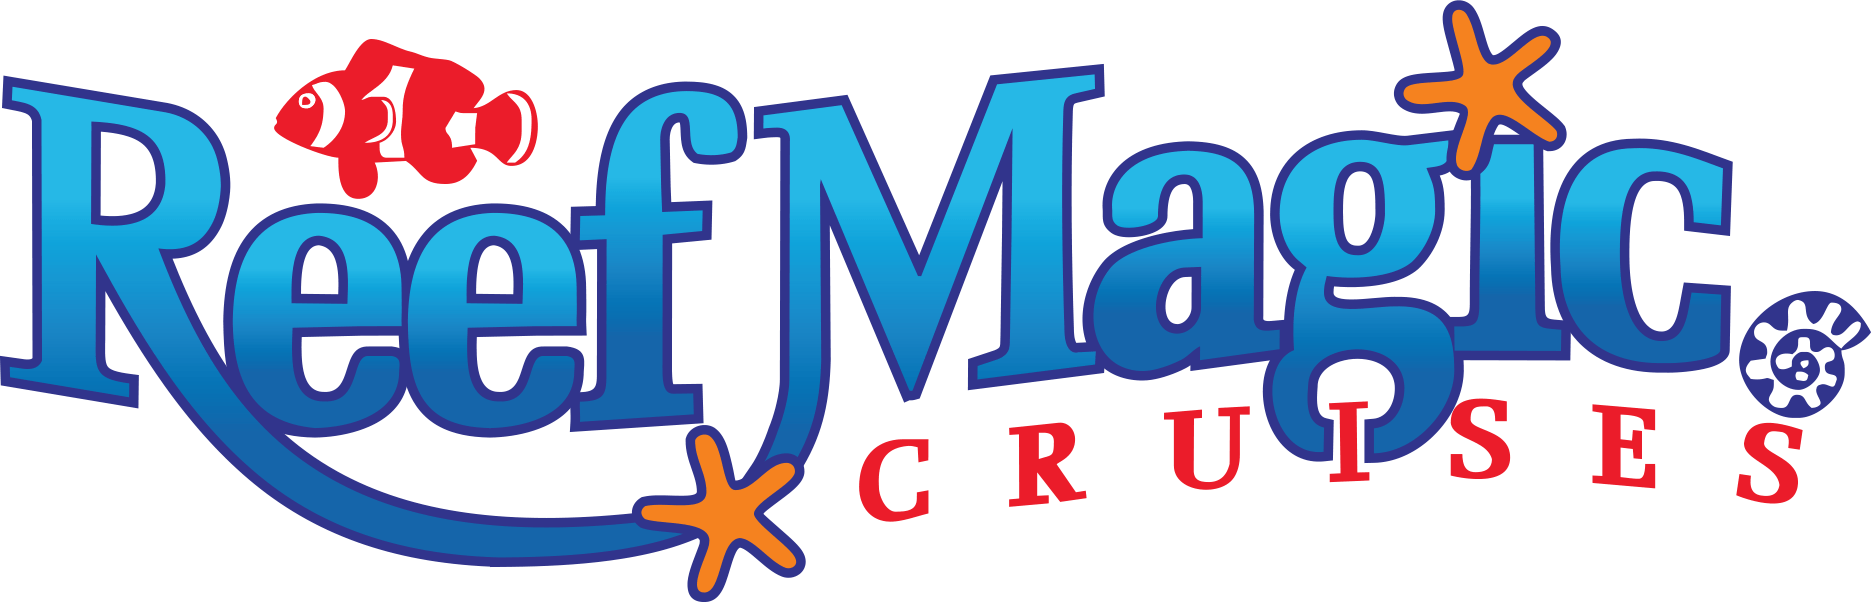 Reef-Magic-Cruises-logo